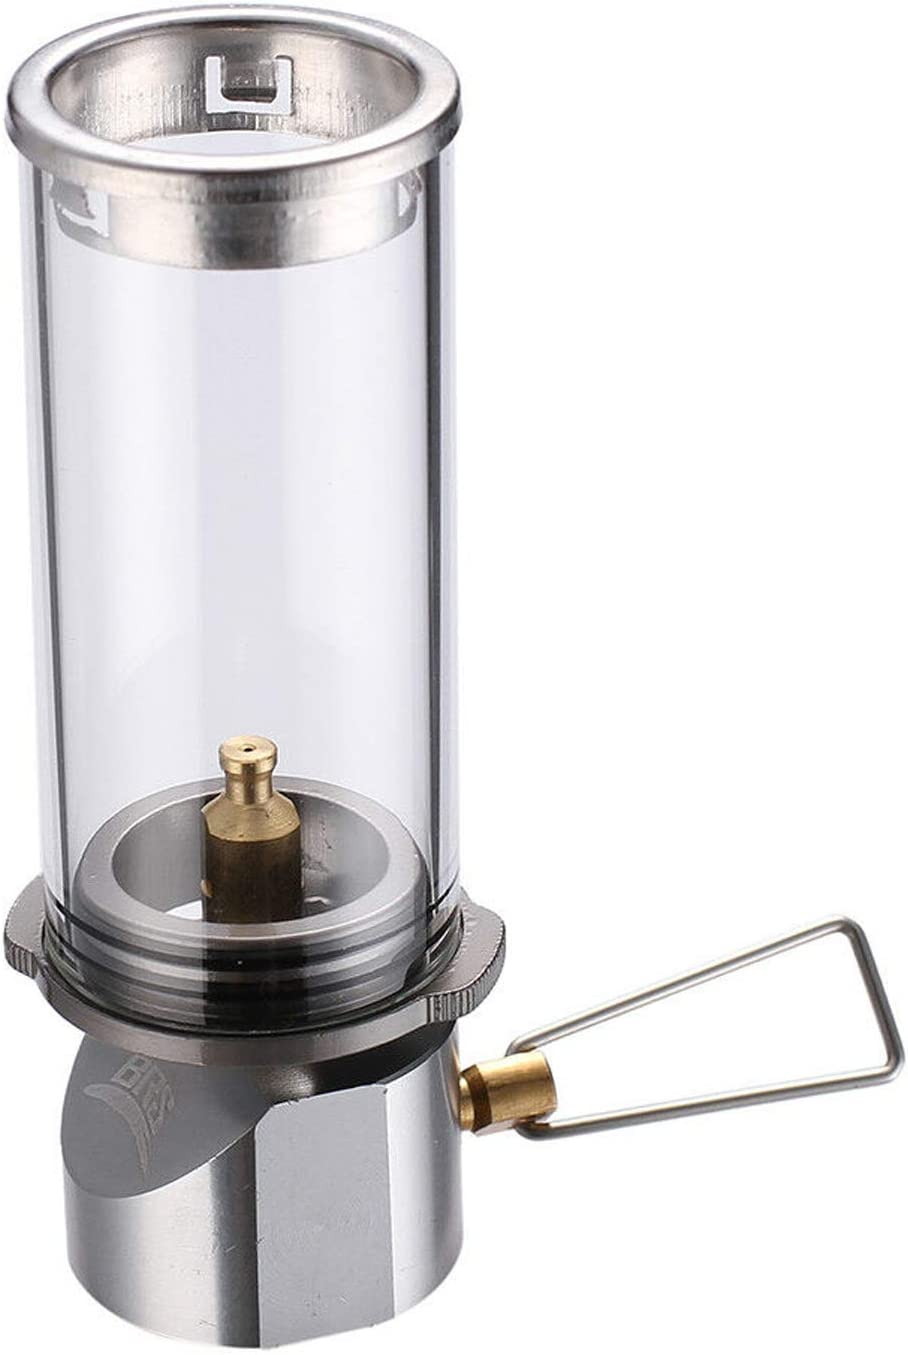 BRS New Orleans Mall Outdoor Gas Lantern Dreamlike Denver Mall Candle Portable Lamp Lant Tent